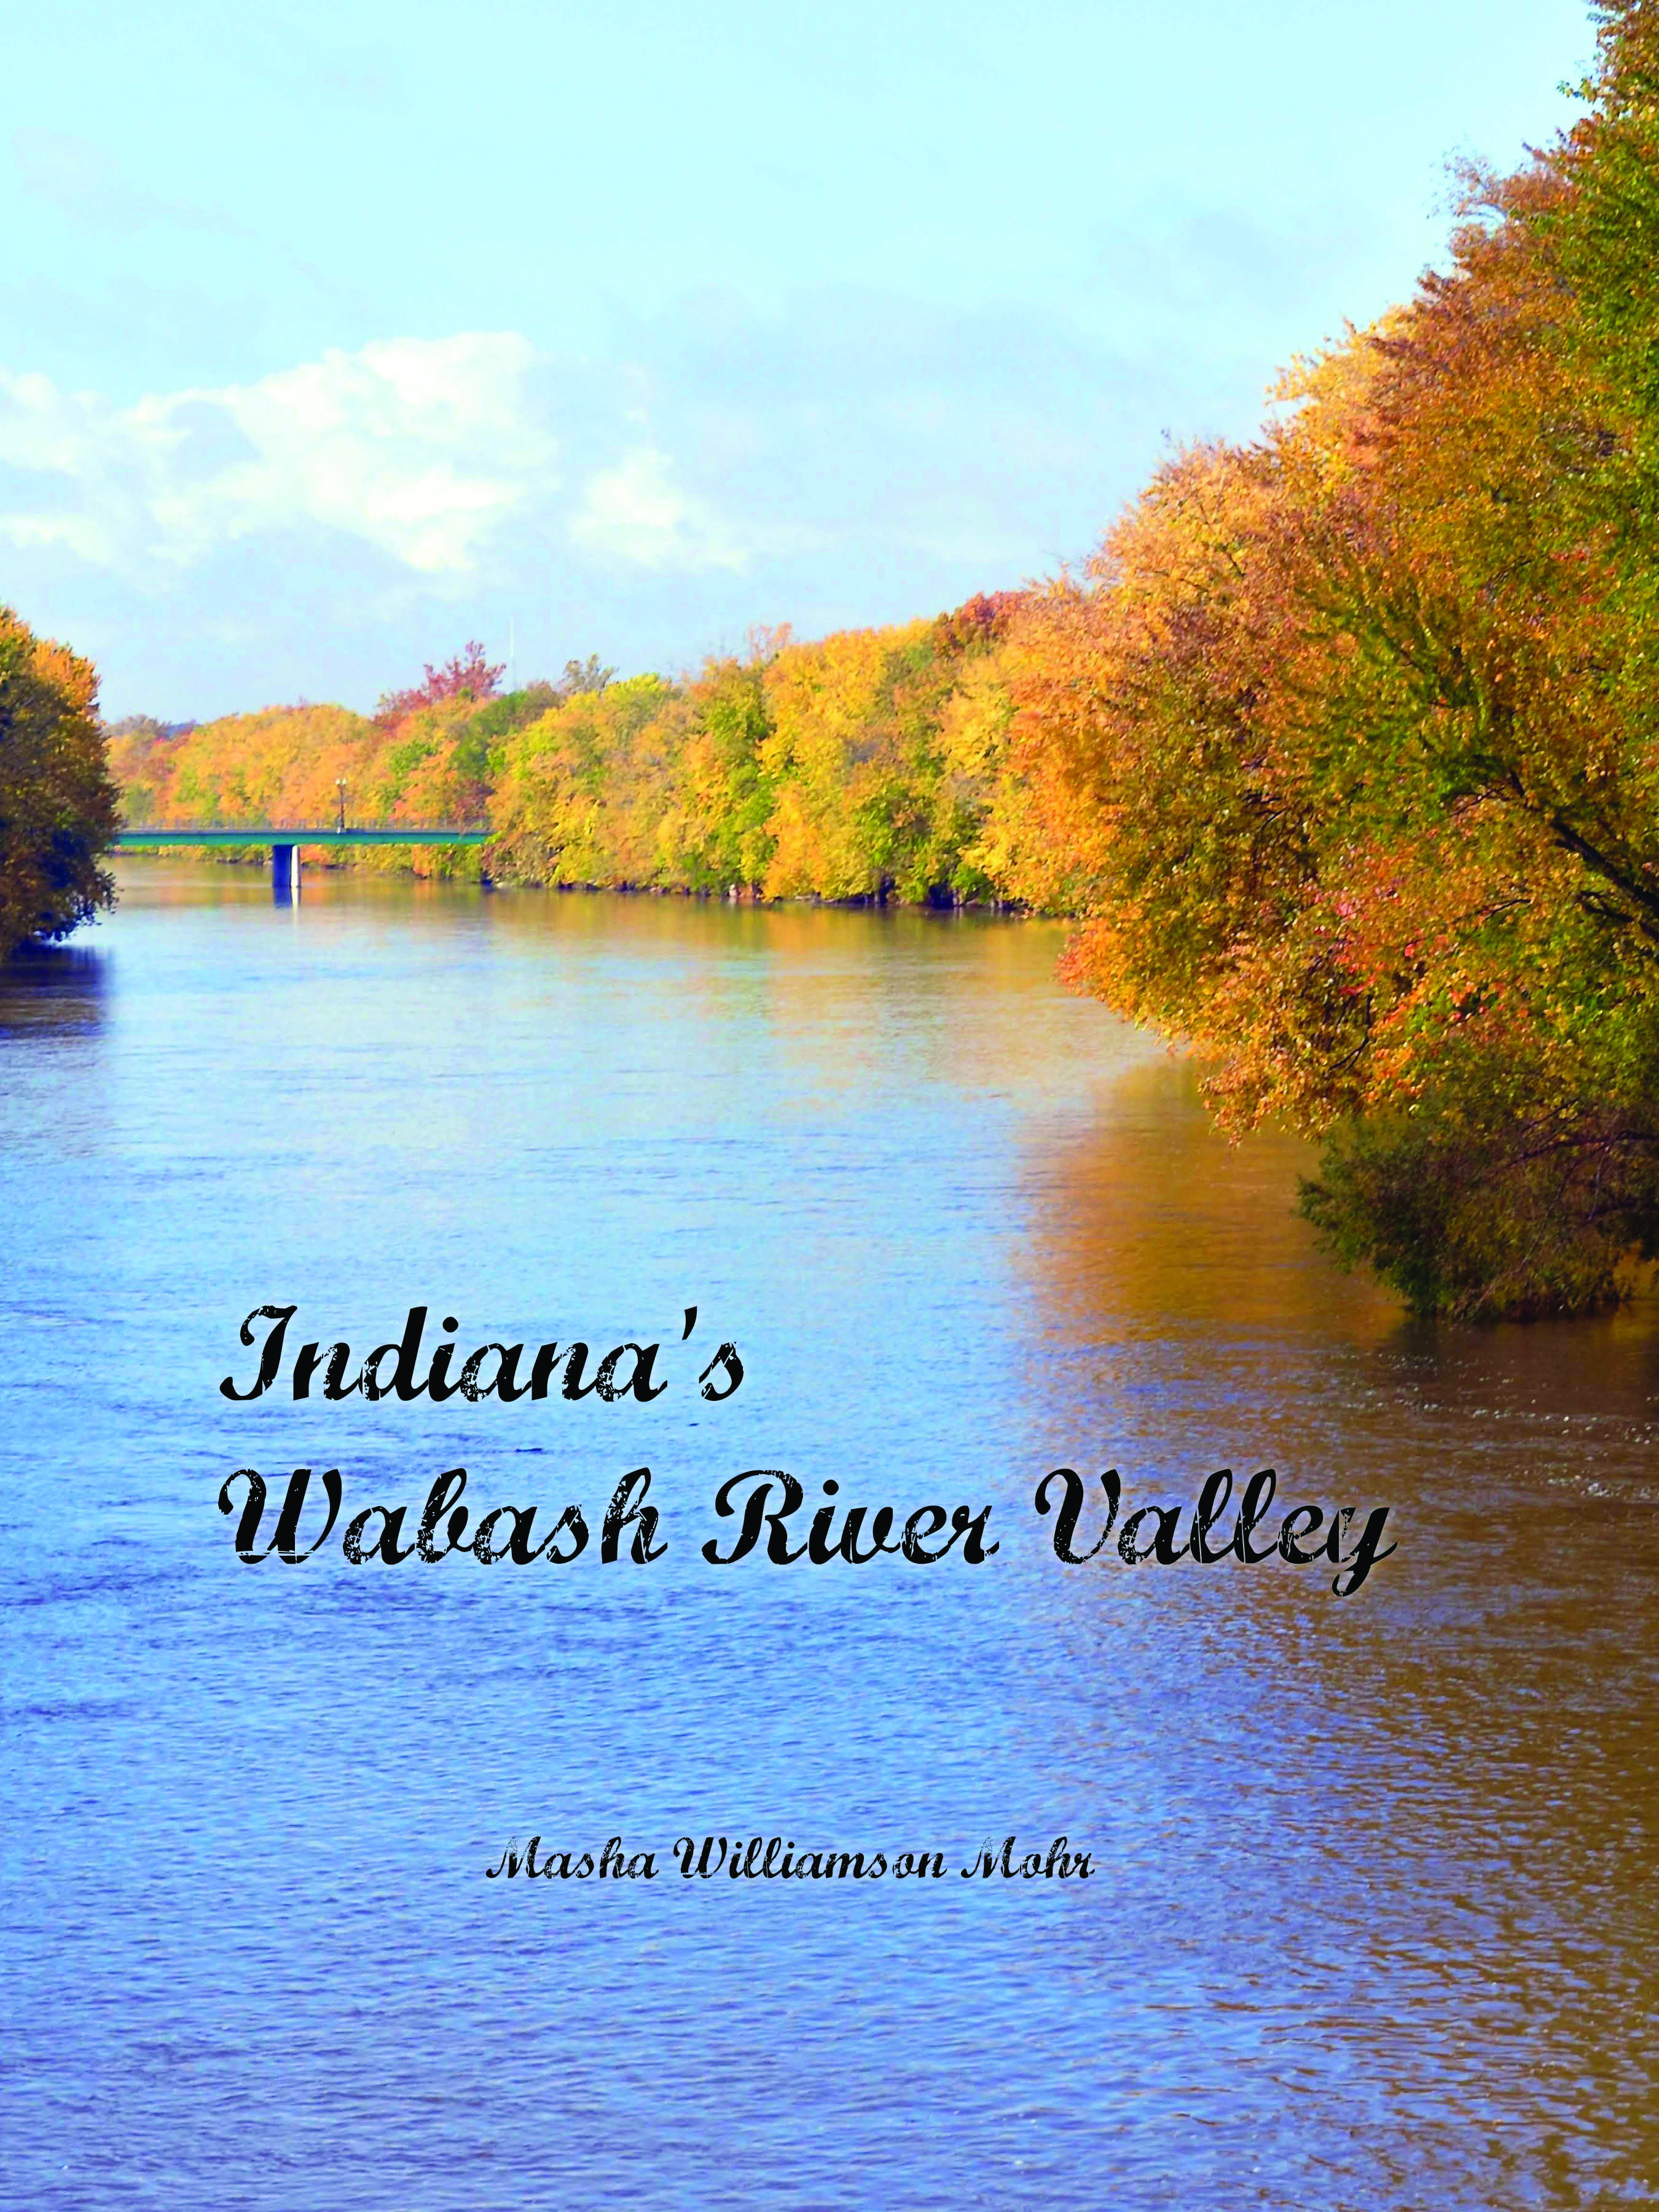 indiana's wasbash river valley